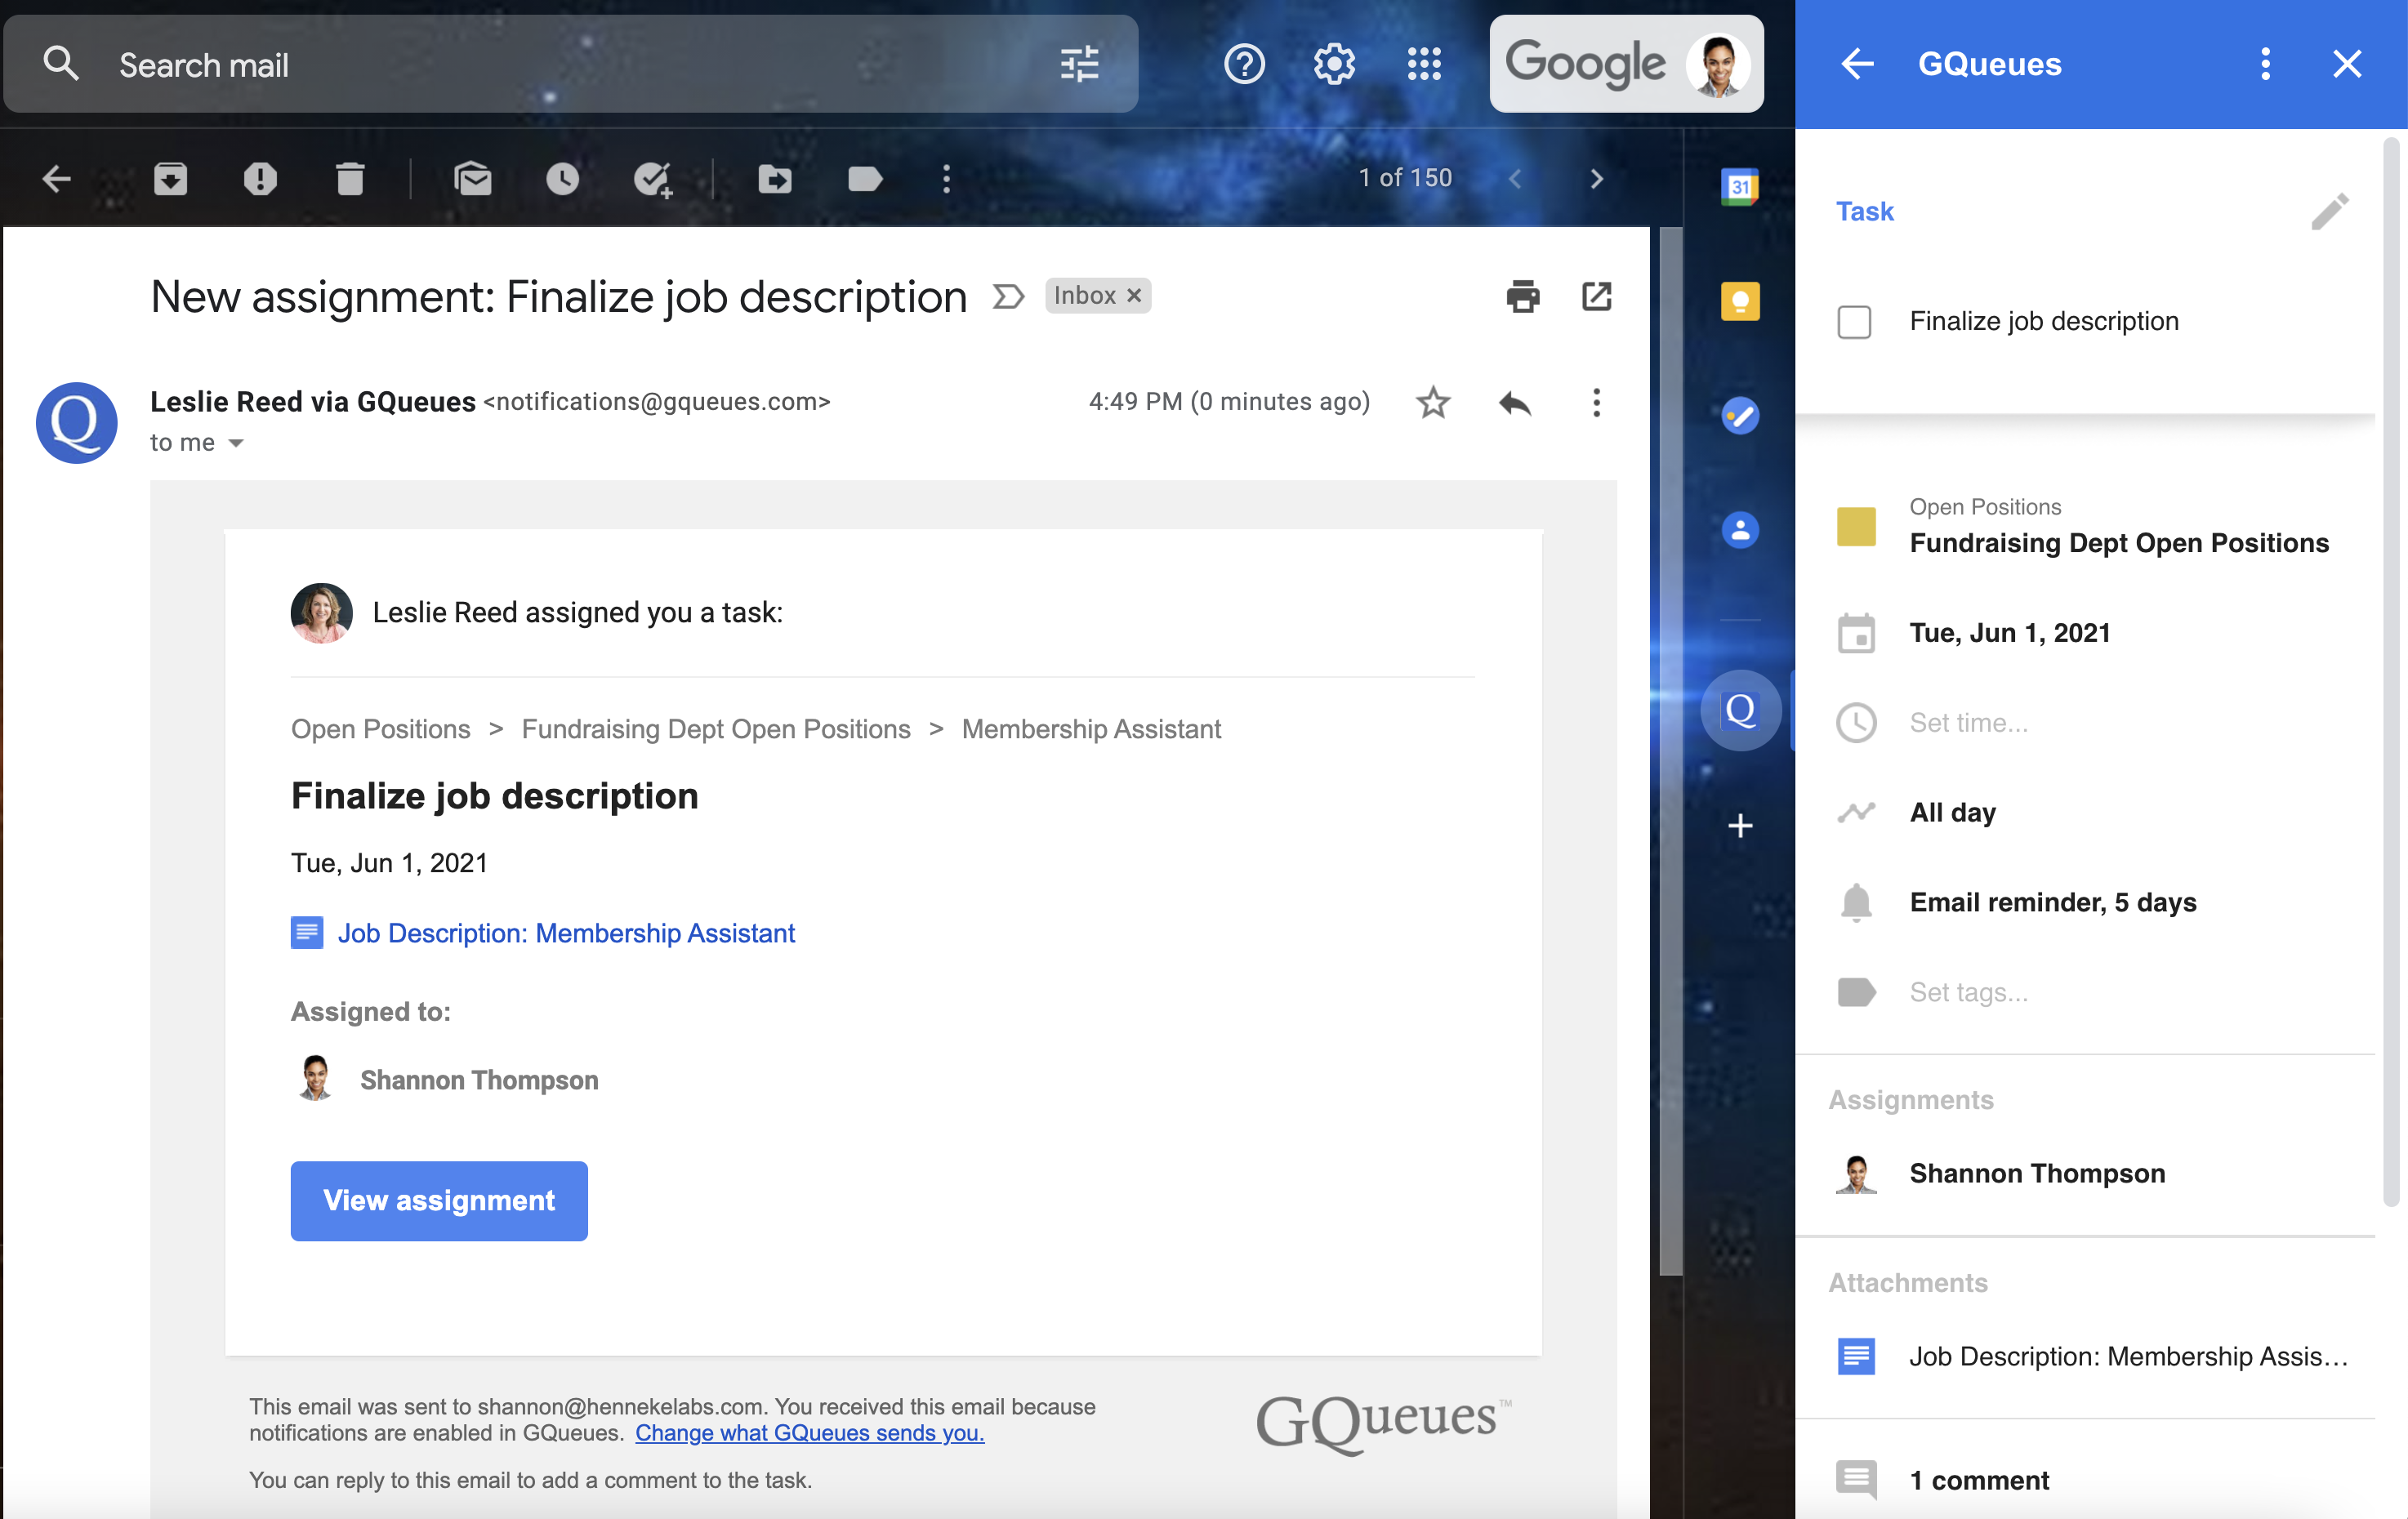 GQueues notification email with task details displayed in the Google Workspace Add-on